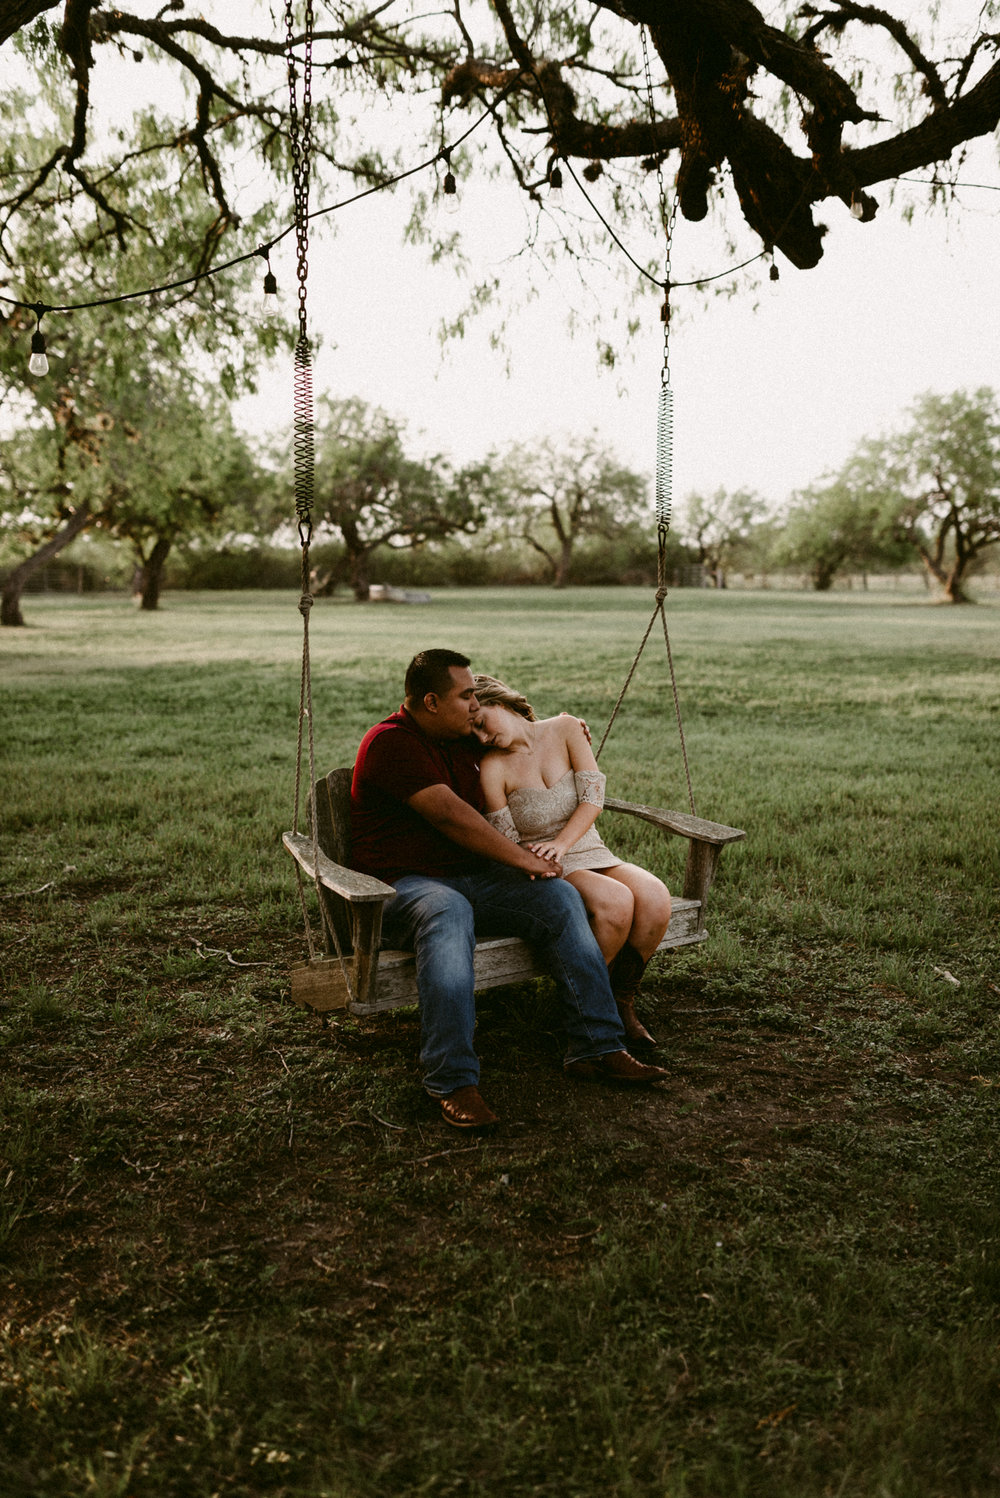 Intimate-Rustic-Bohemian-Engagement-Session-The-Ranch-at-San-Patricio-Corpus-Christi-Wedding-Photographer